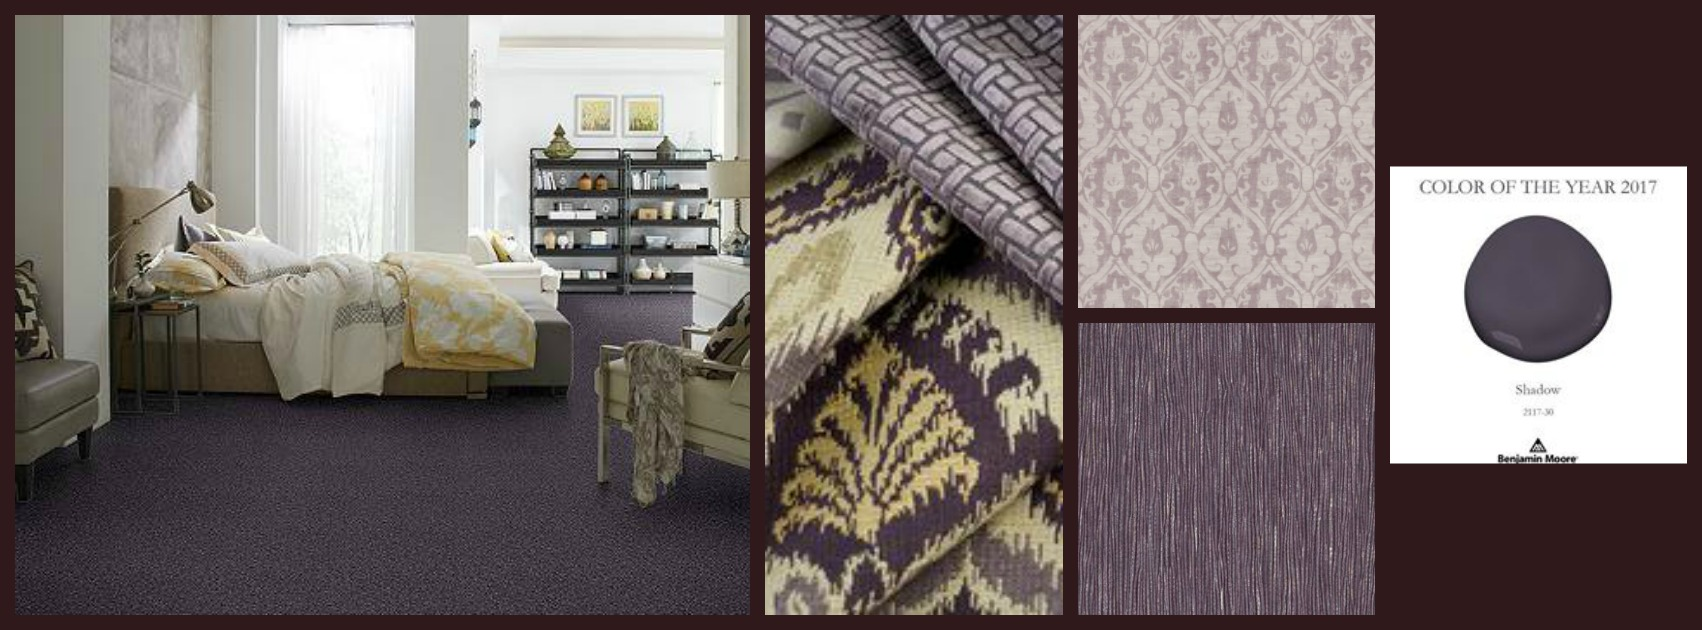 """If you guessed the color purple, well, your mainly right, but if your guess is Benjamin Moore's 2017 Color of the Year, """"Shadow"""" - you got it! Over the years we've come to know Diane's love for the color purple, so her pick for 2017 shouldn't surprise us.  """"Surrounding yourself in your favorite color and giving that color just the right color combination, will compliment beautifully. No need to over-indulge (insert laugh) just focus on the overall look with textures and patterns and repeat a bit throughout your home."""""""